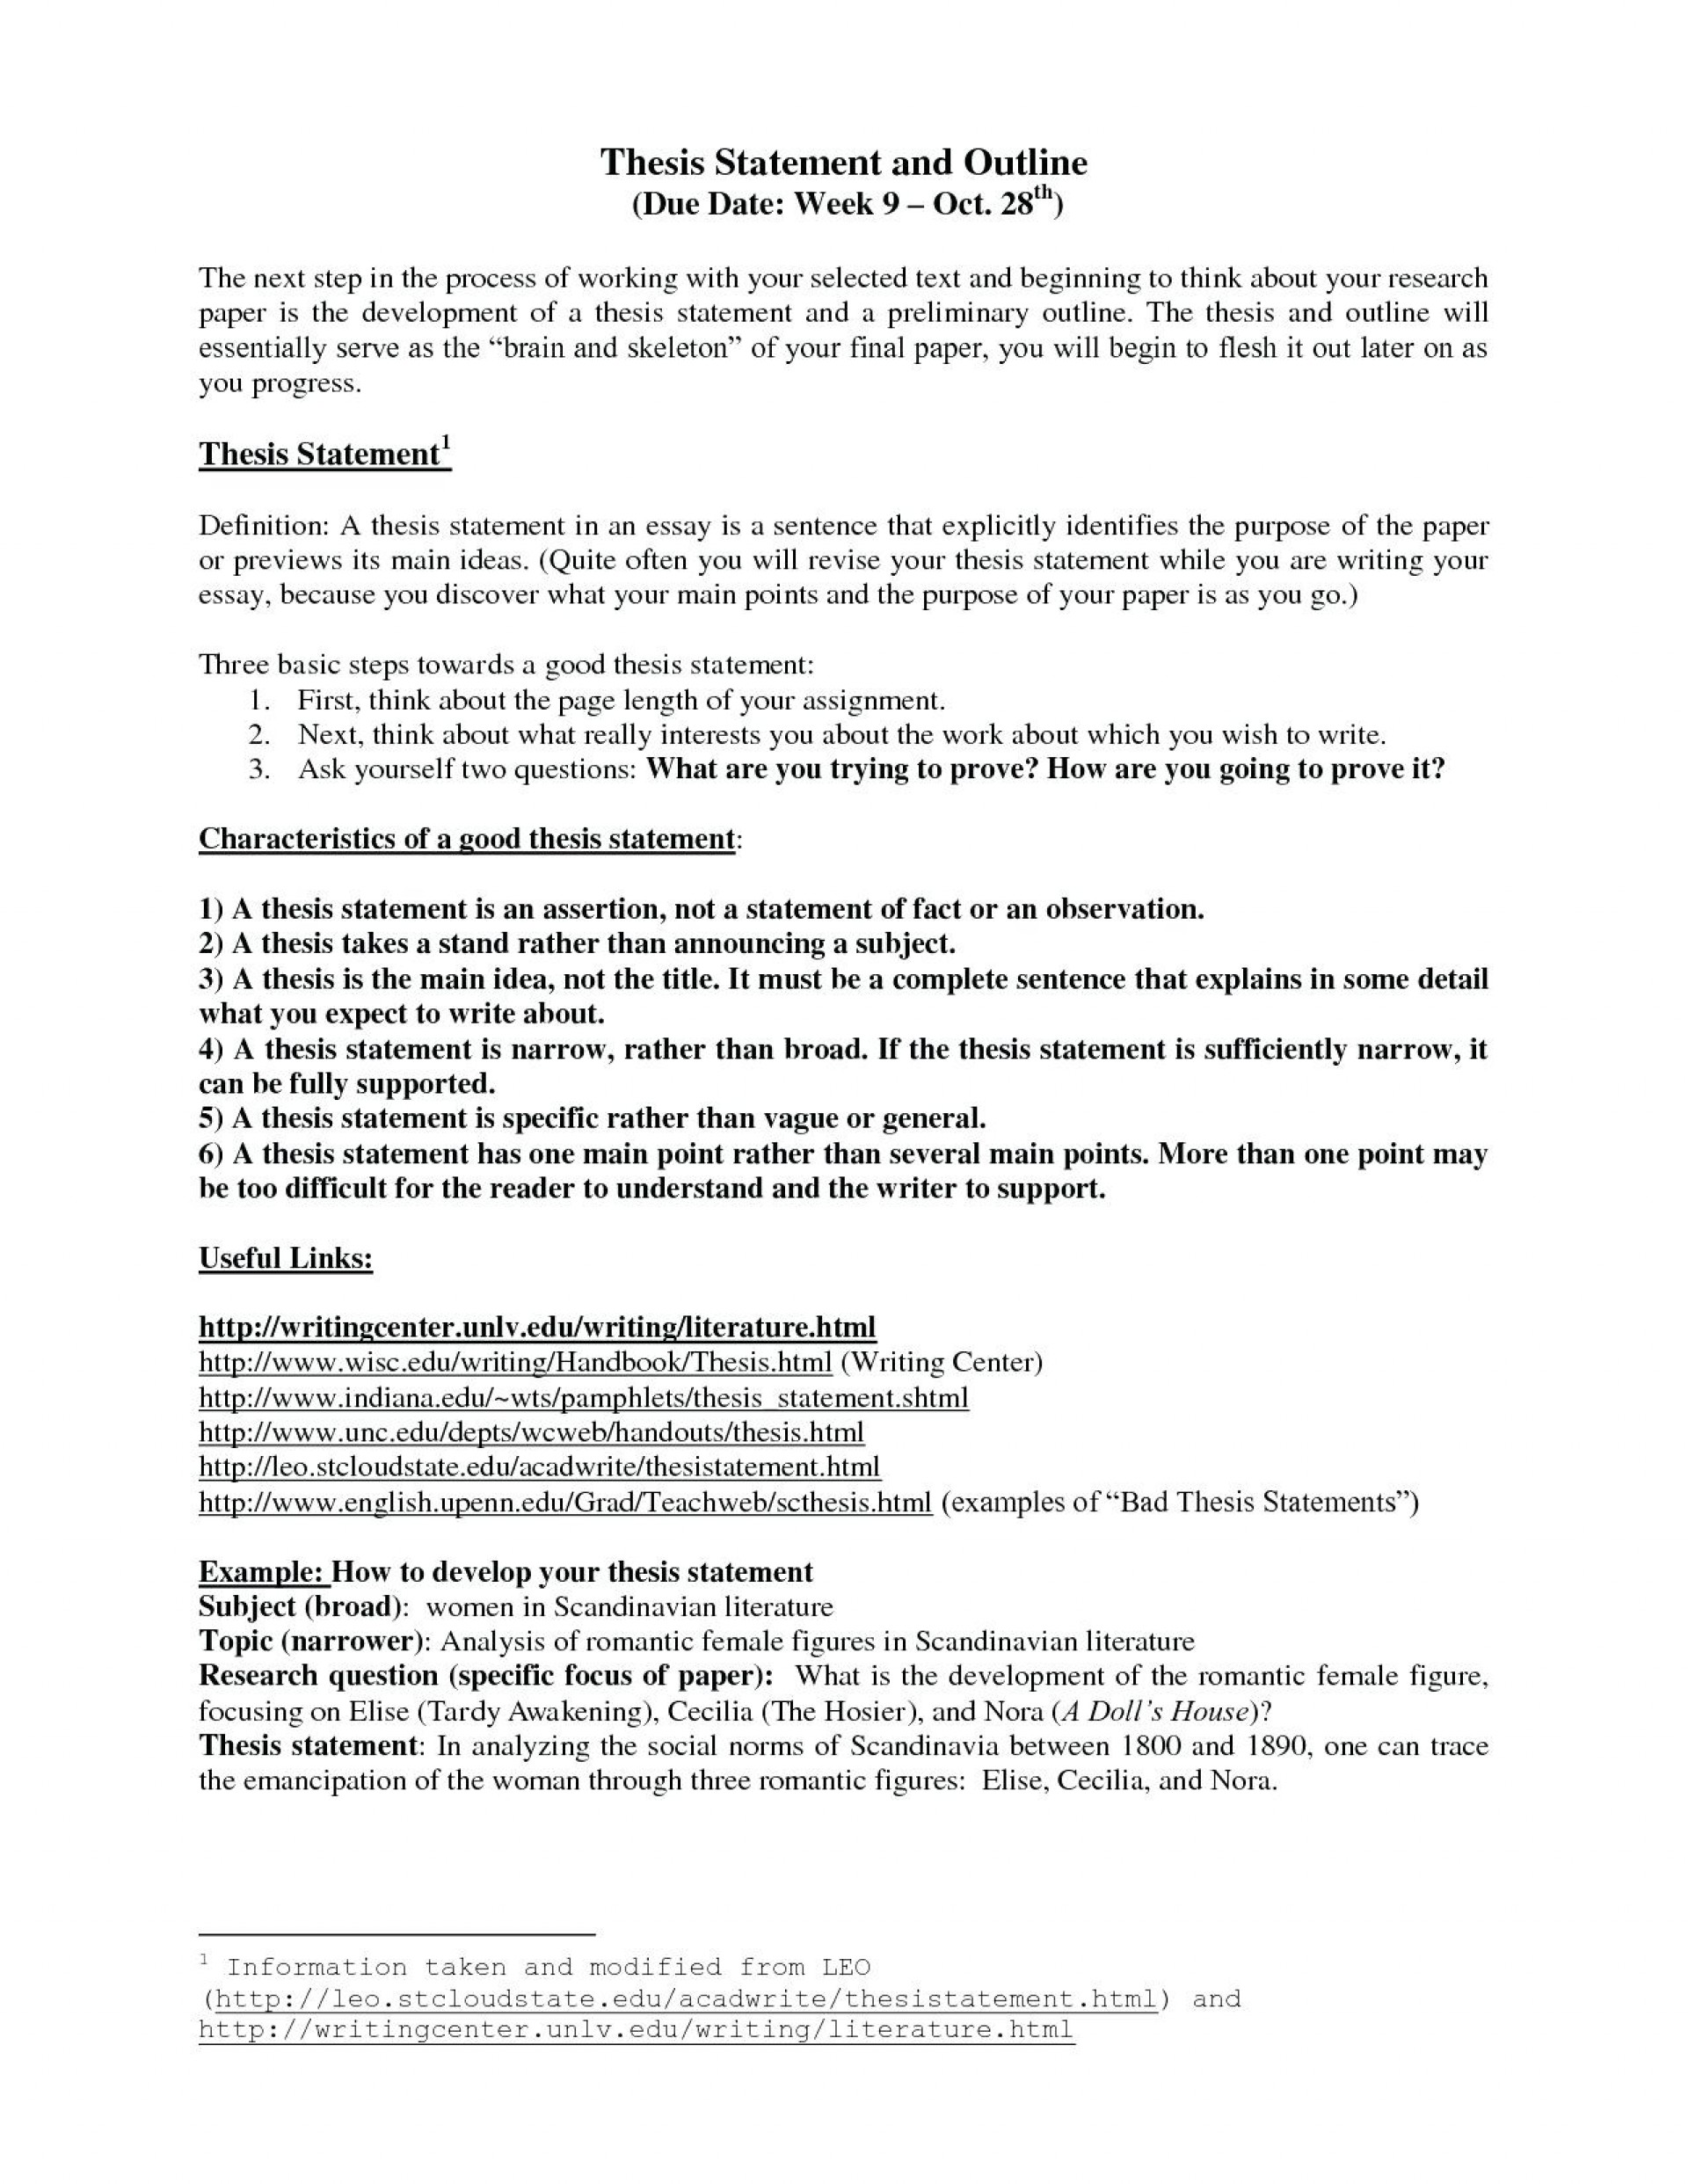 004 Essay Example Apa Template Paper Definition With Cheap Papers Style Running Head Write My For Shocking Free App Argumentative Online 1920